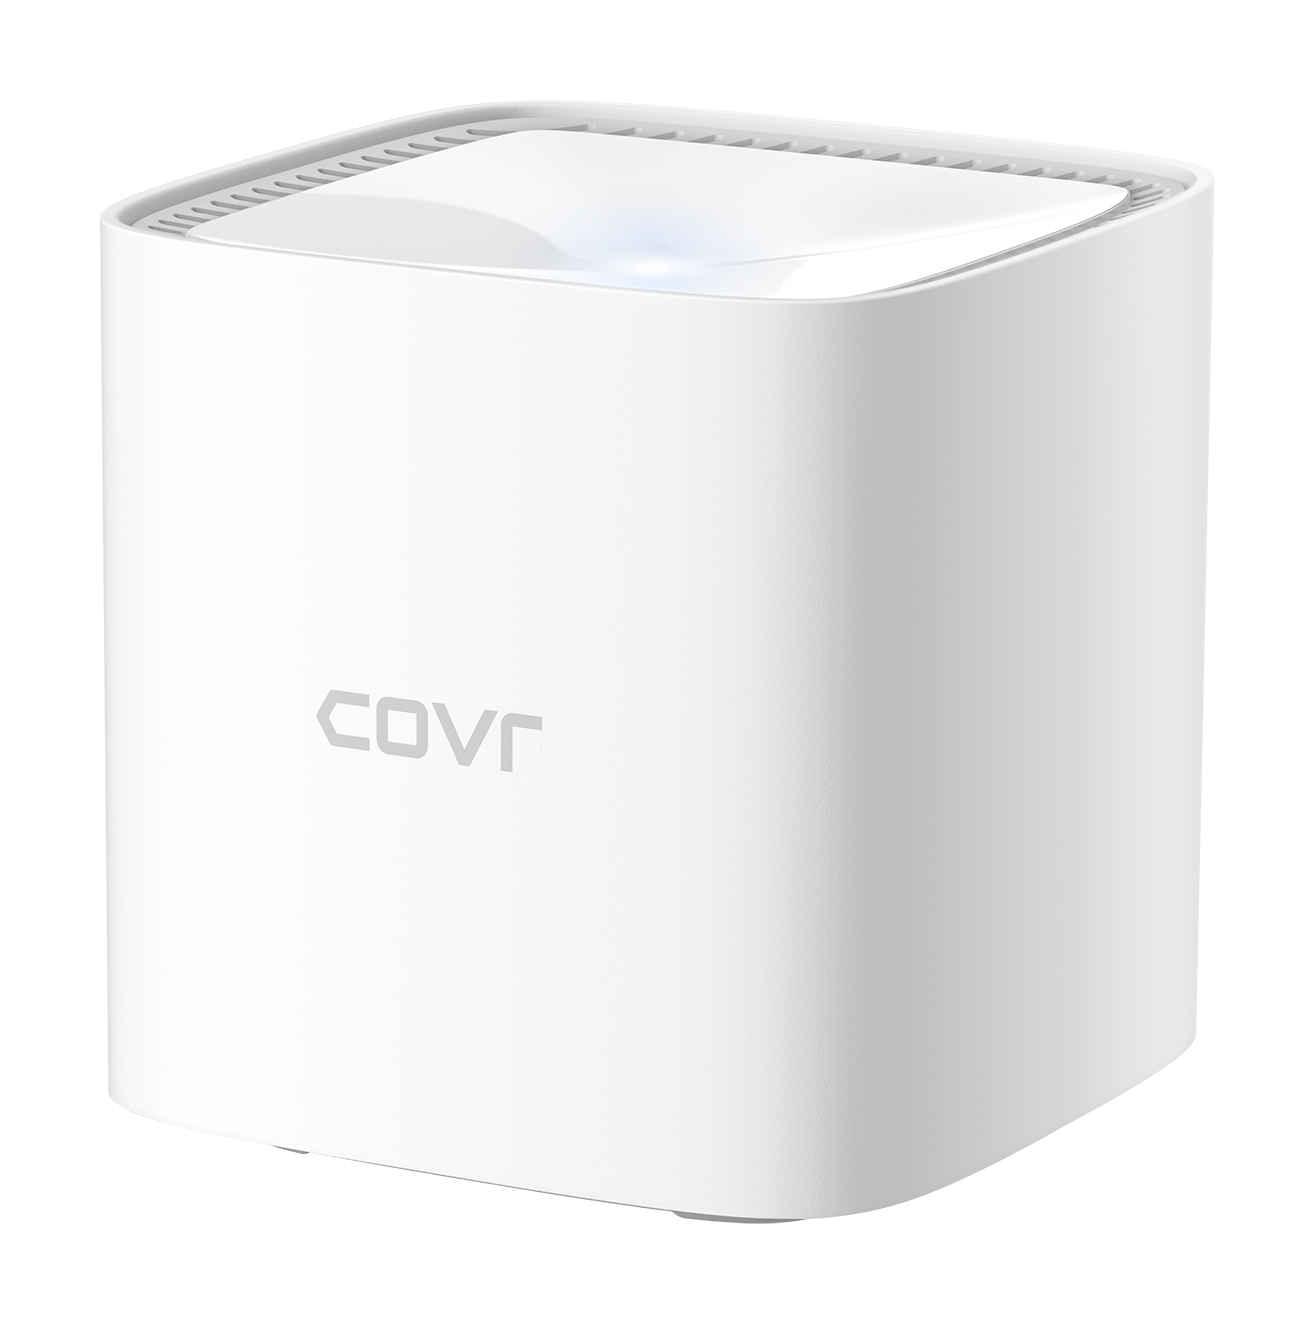 COVR-1100 AC1200 Dual Band Whole Home Mesh Wi-Fi System - side left